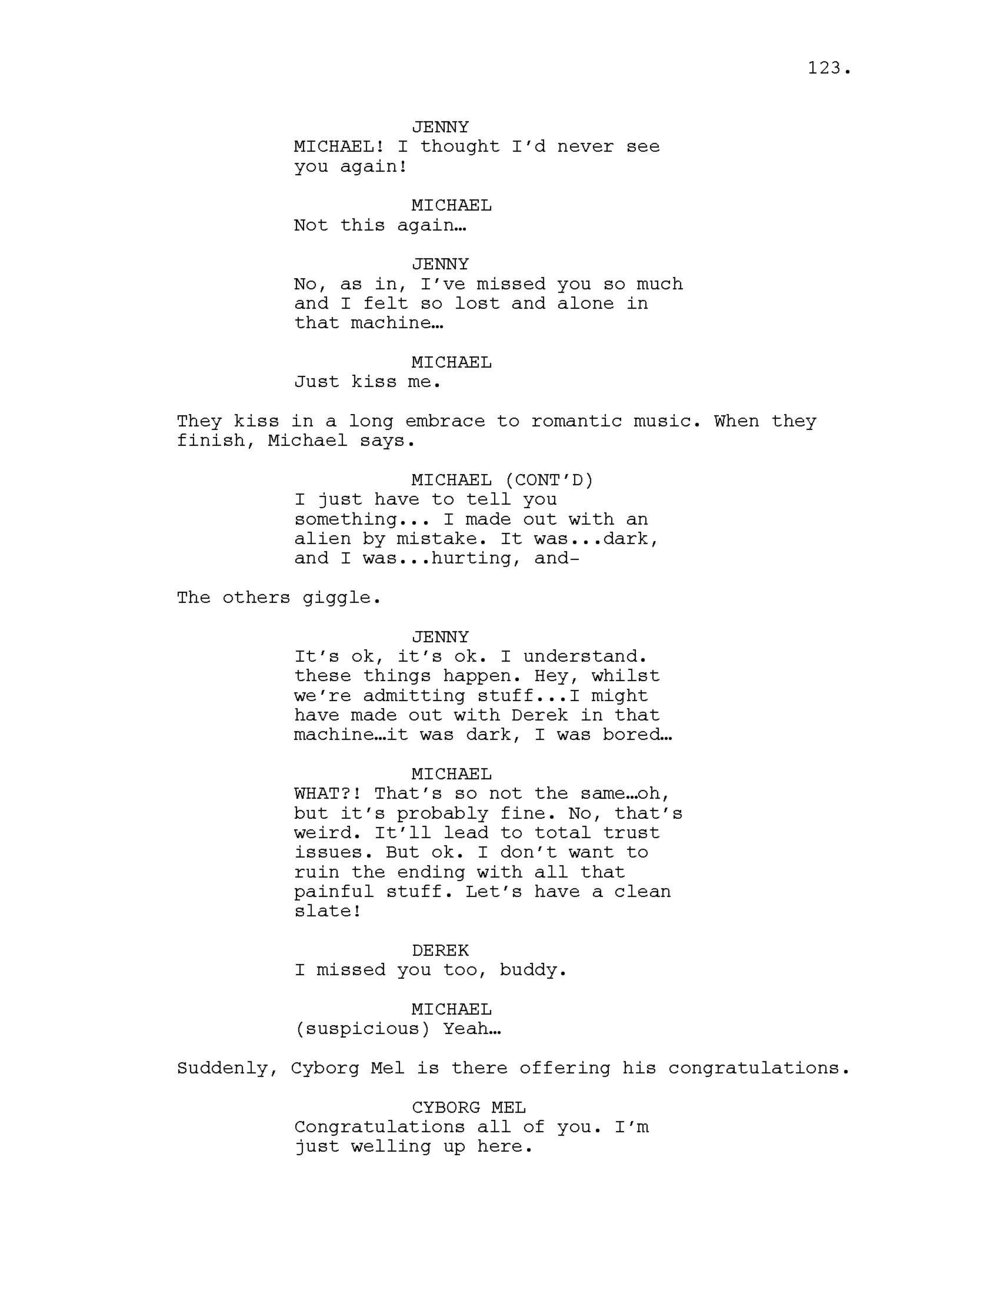 INVISIBLE WORLD SCRIPT_Page_124.jpg